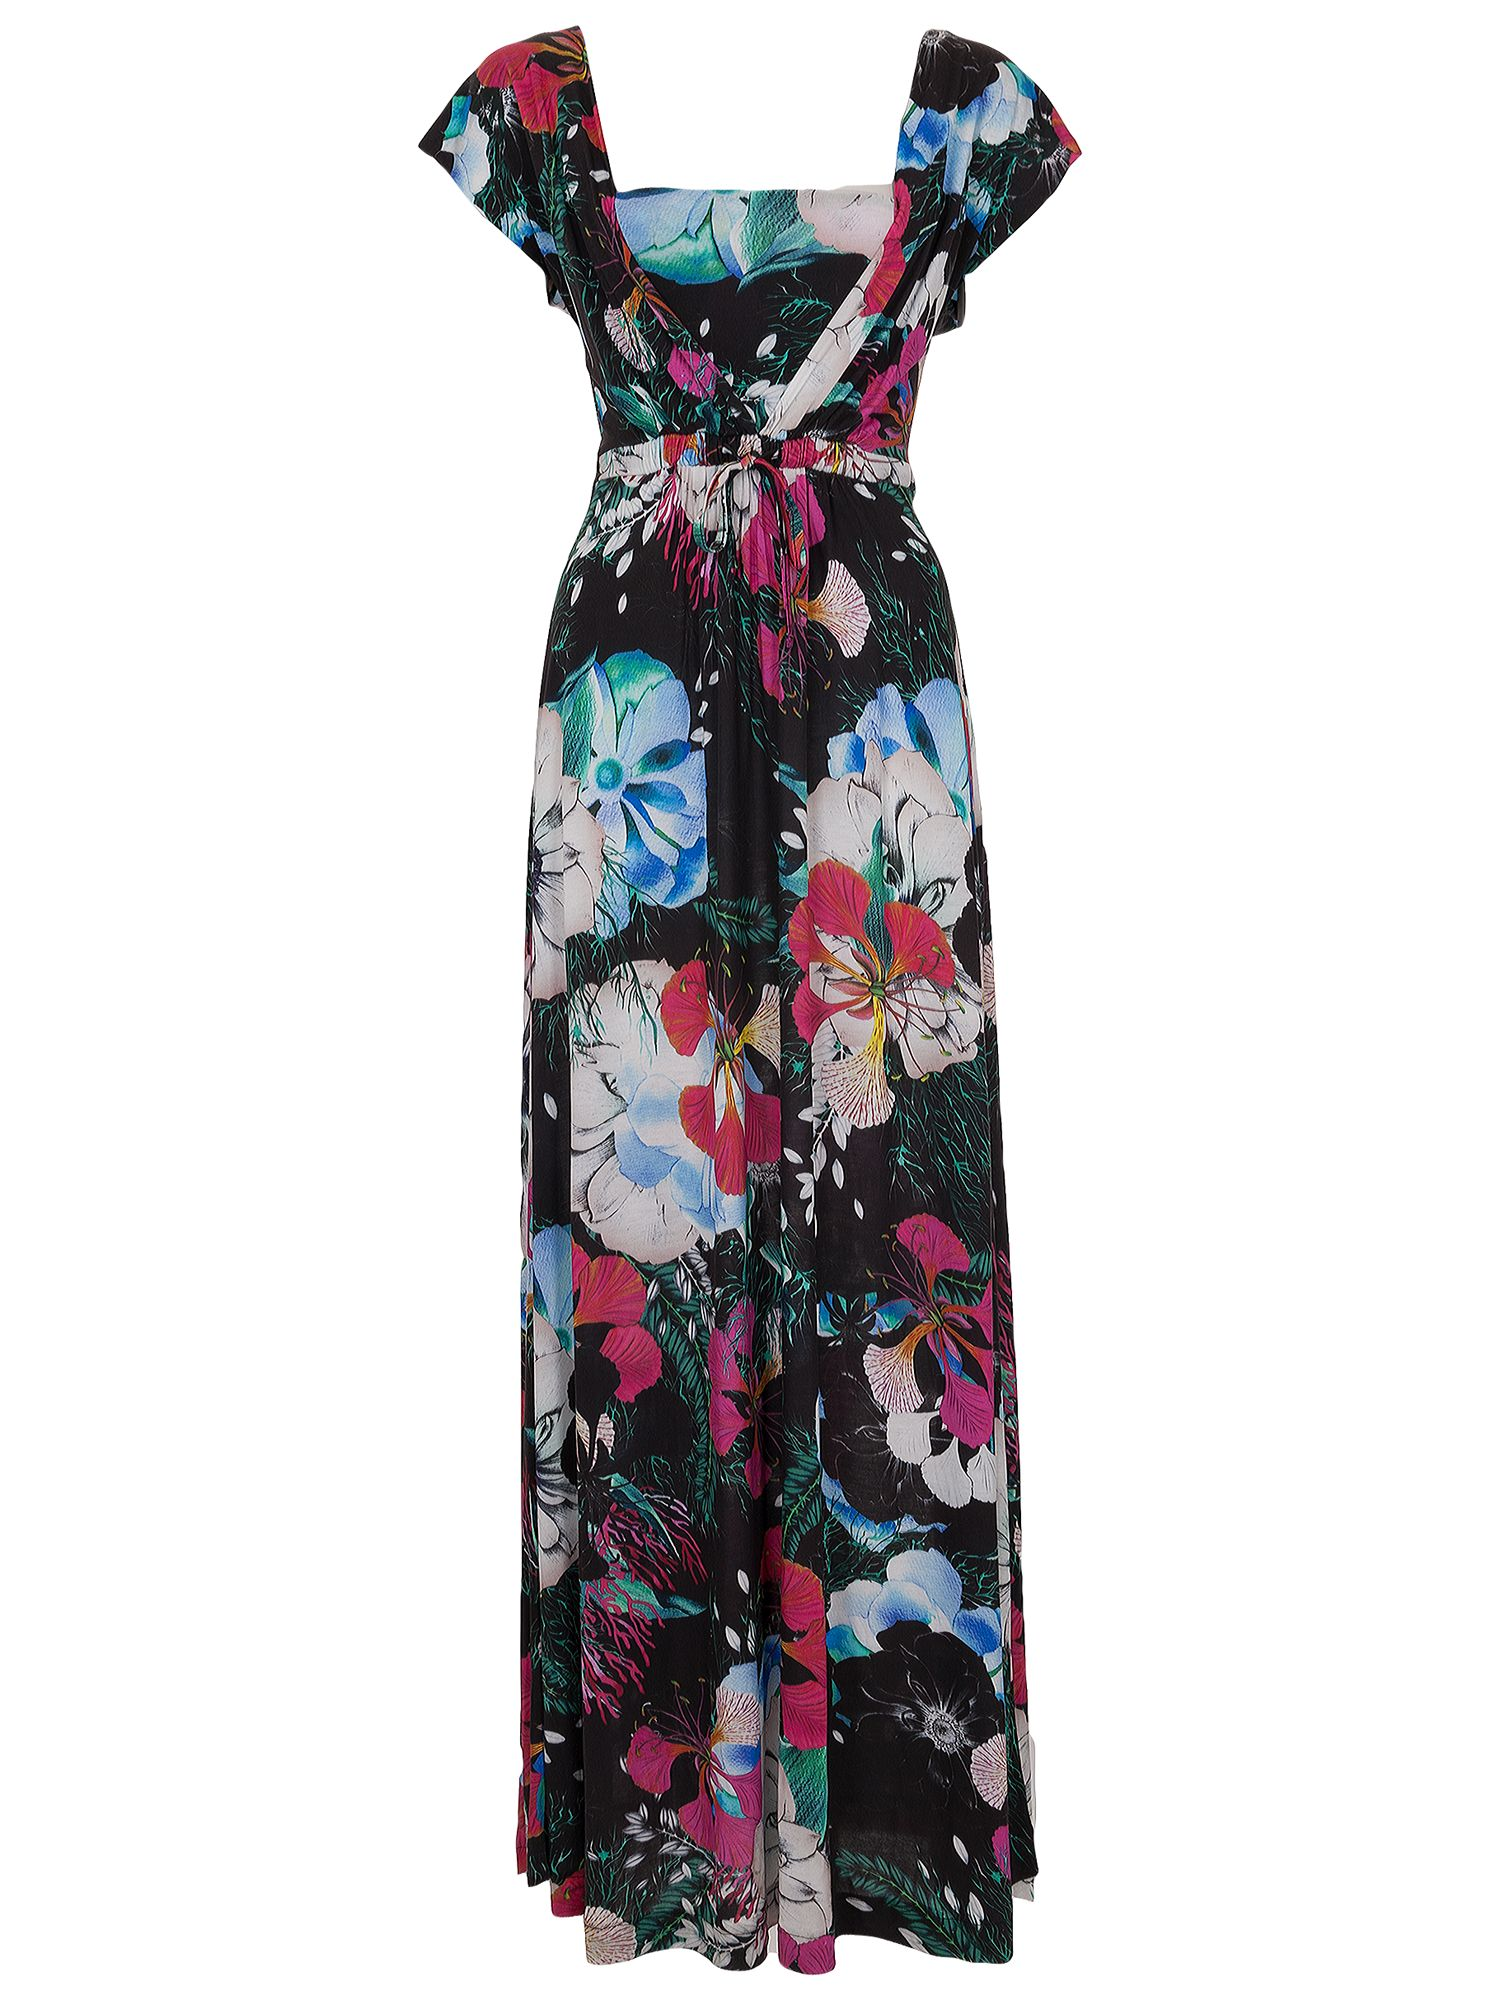 french connection floral reef maxi dress black multi, french, connection, floral, reef, maxi, dress, black, multi, french connection, 16|12|6|10|14|8, women, womens dresses, 1933157